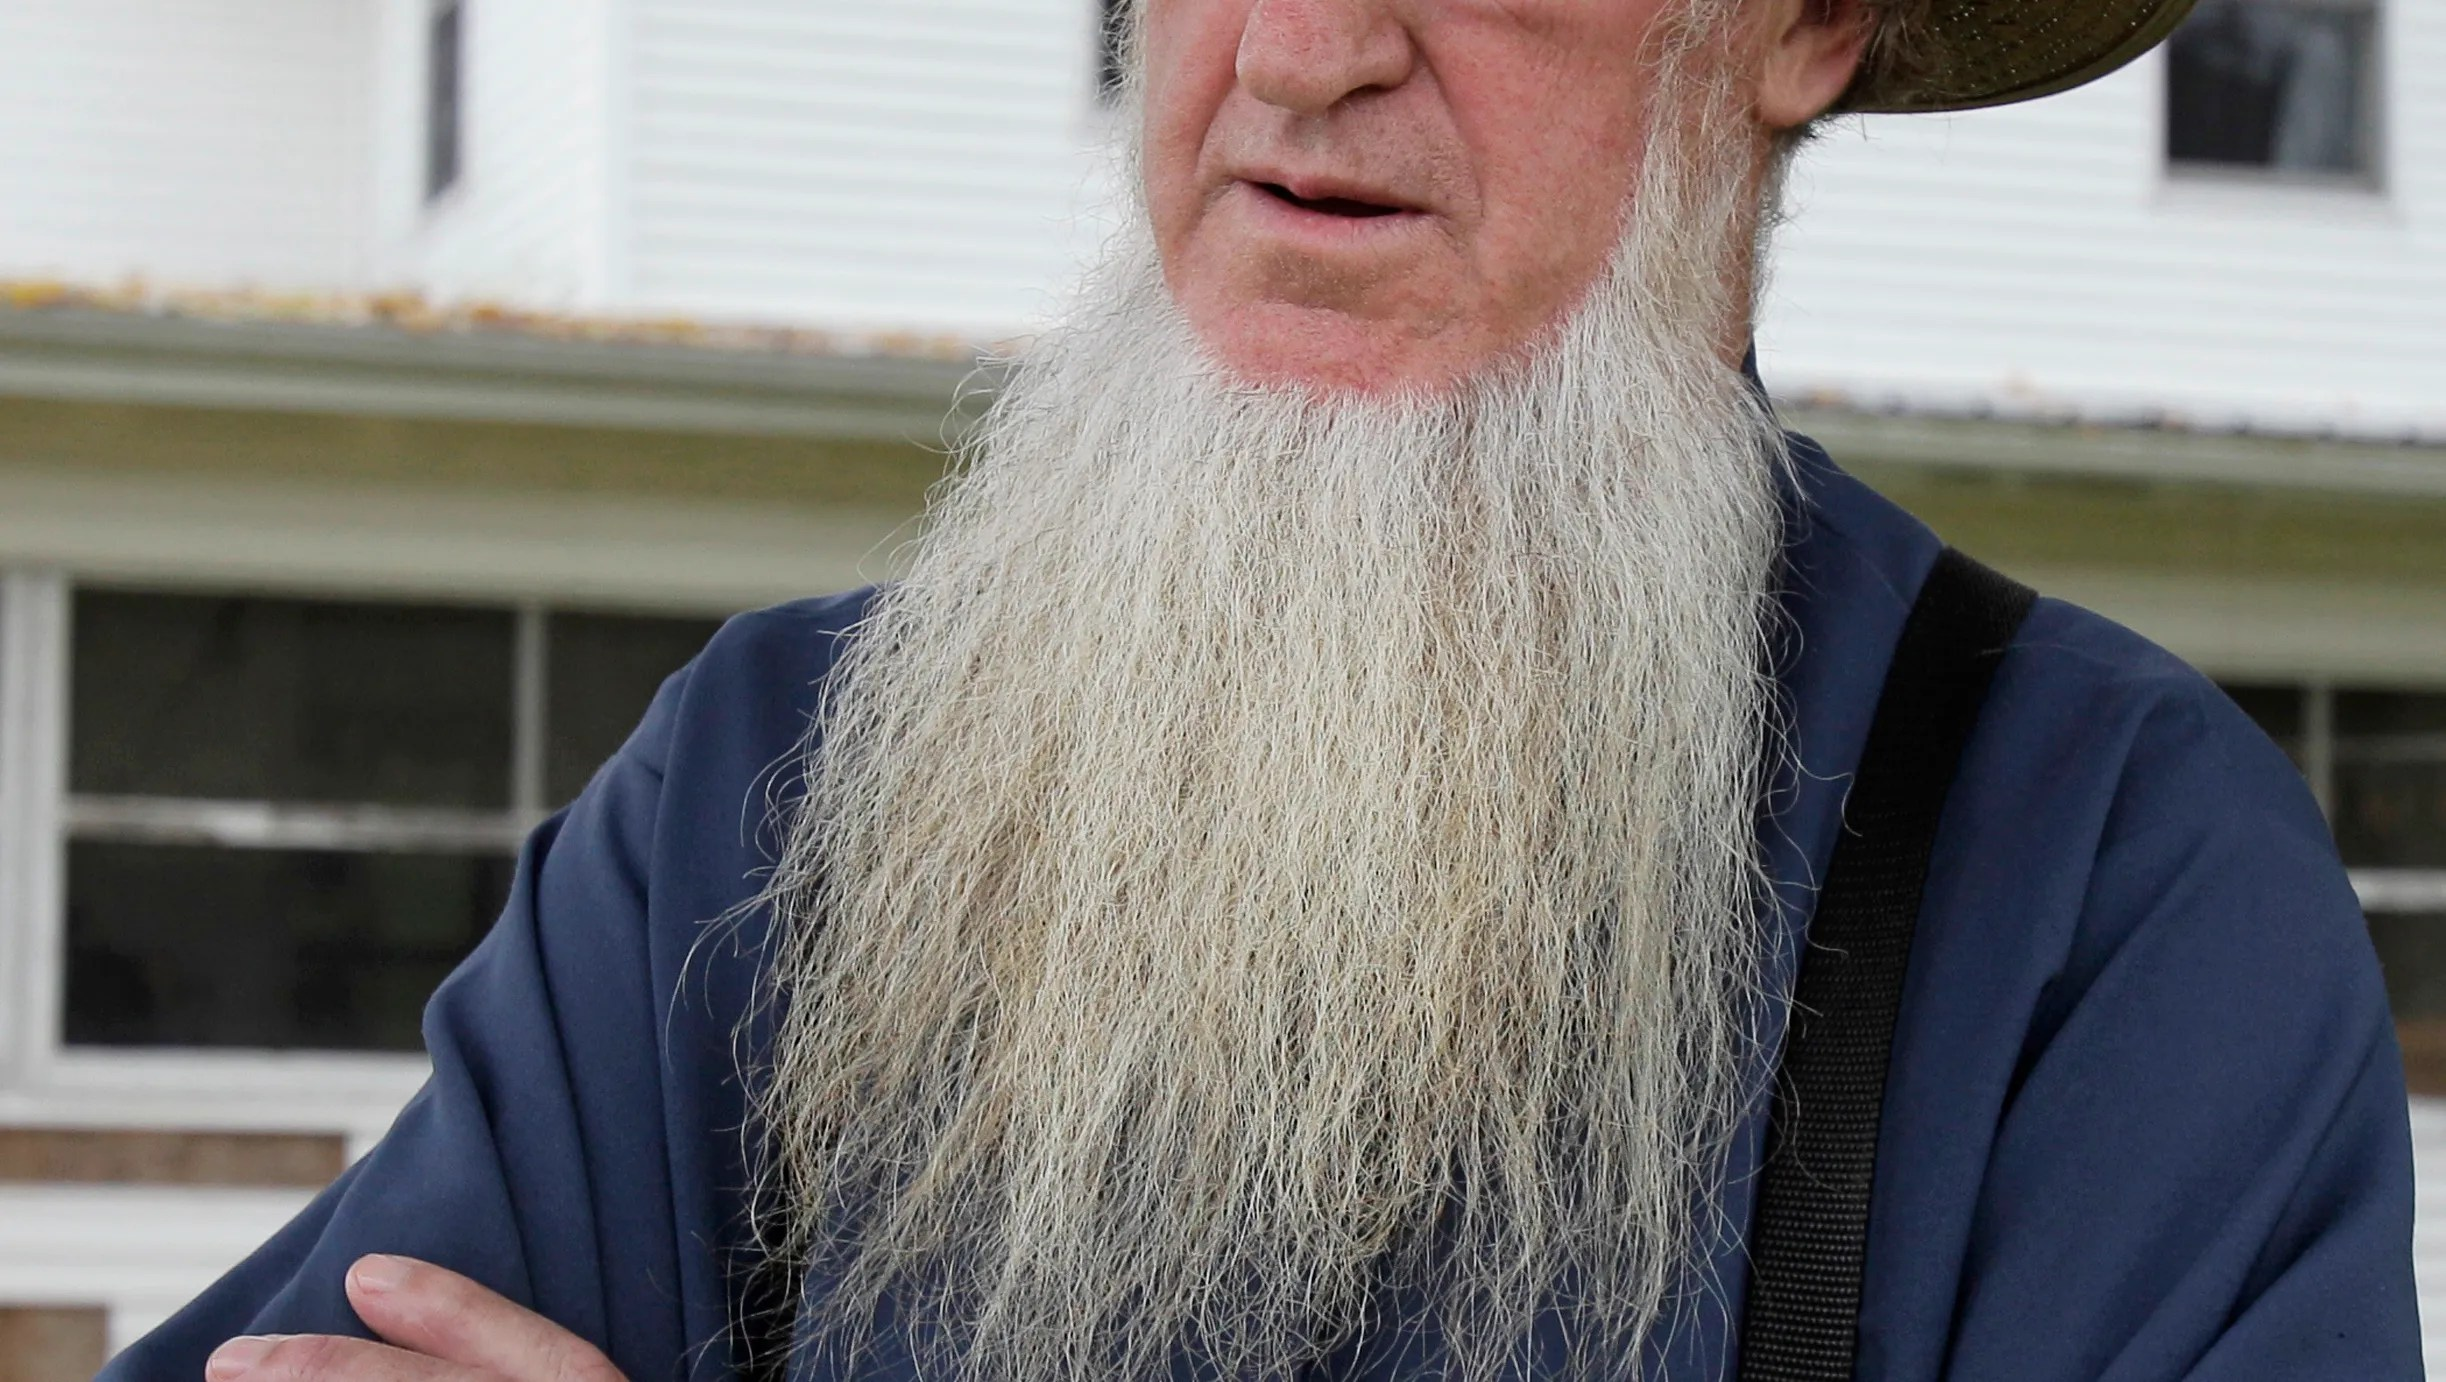 amish man convicted in hair